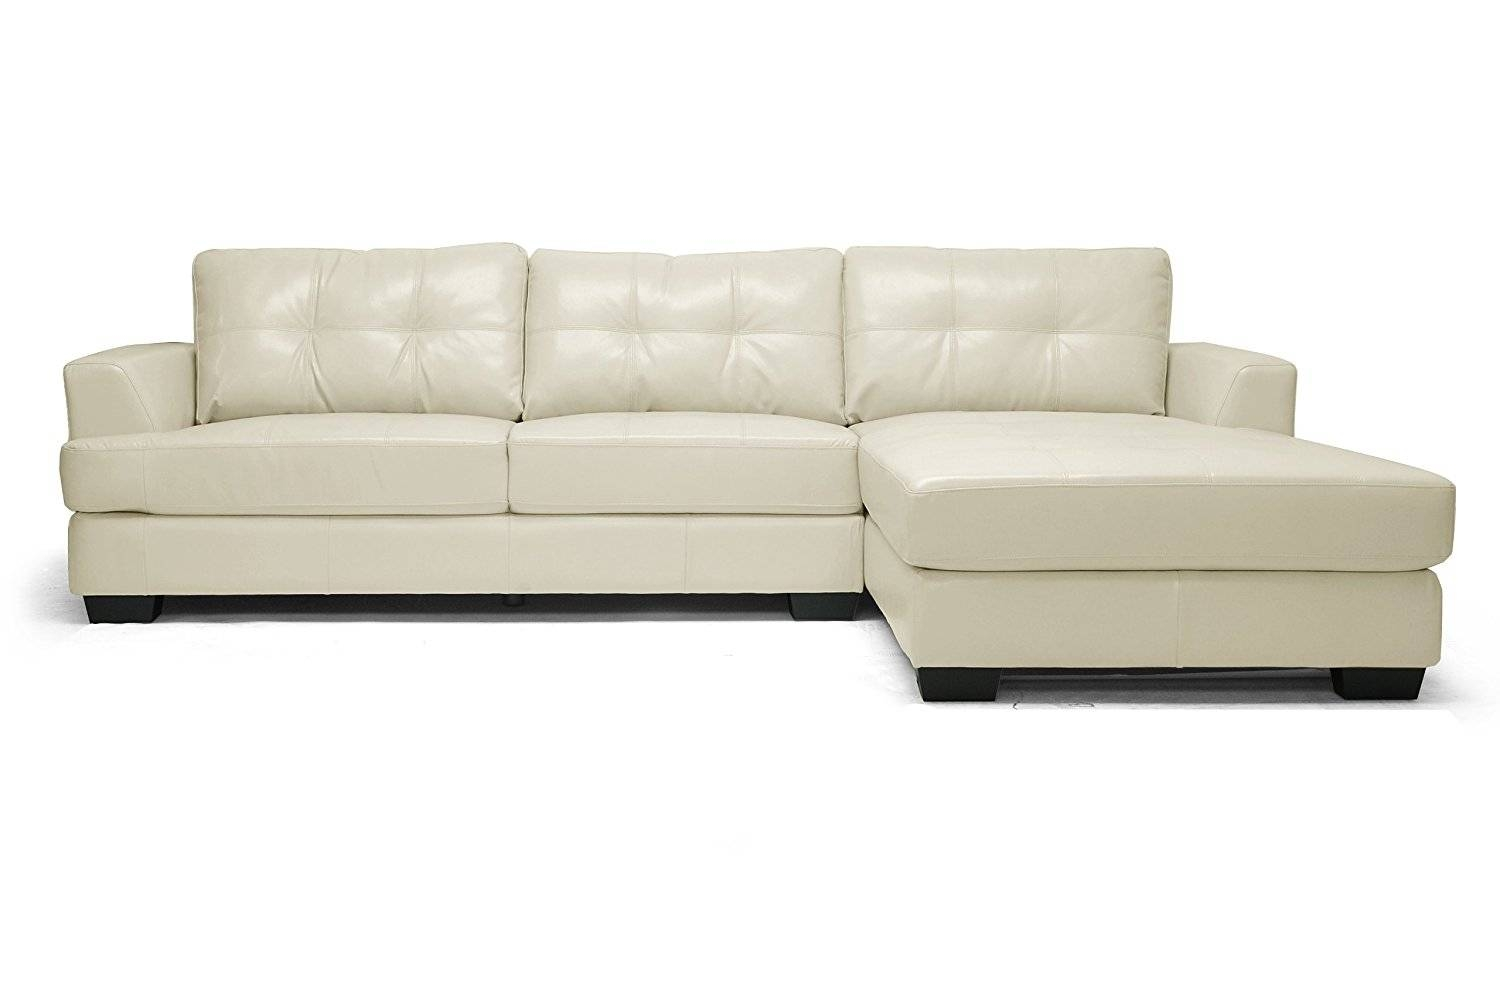 30 Best Collection Of Braxton Sofa